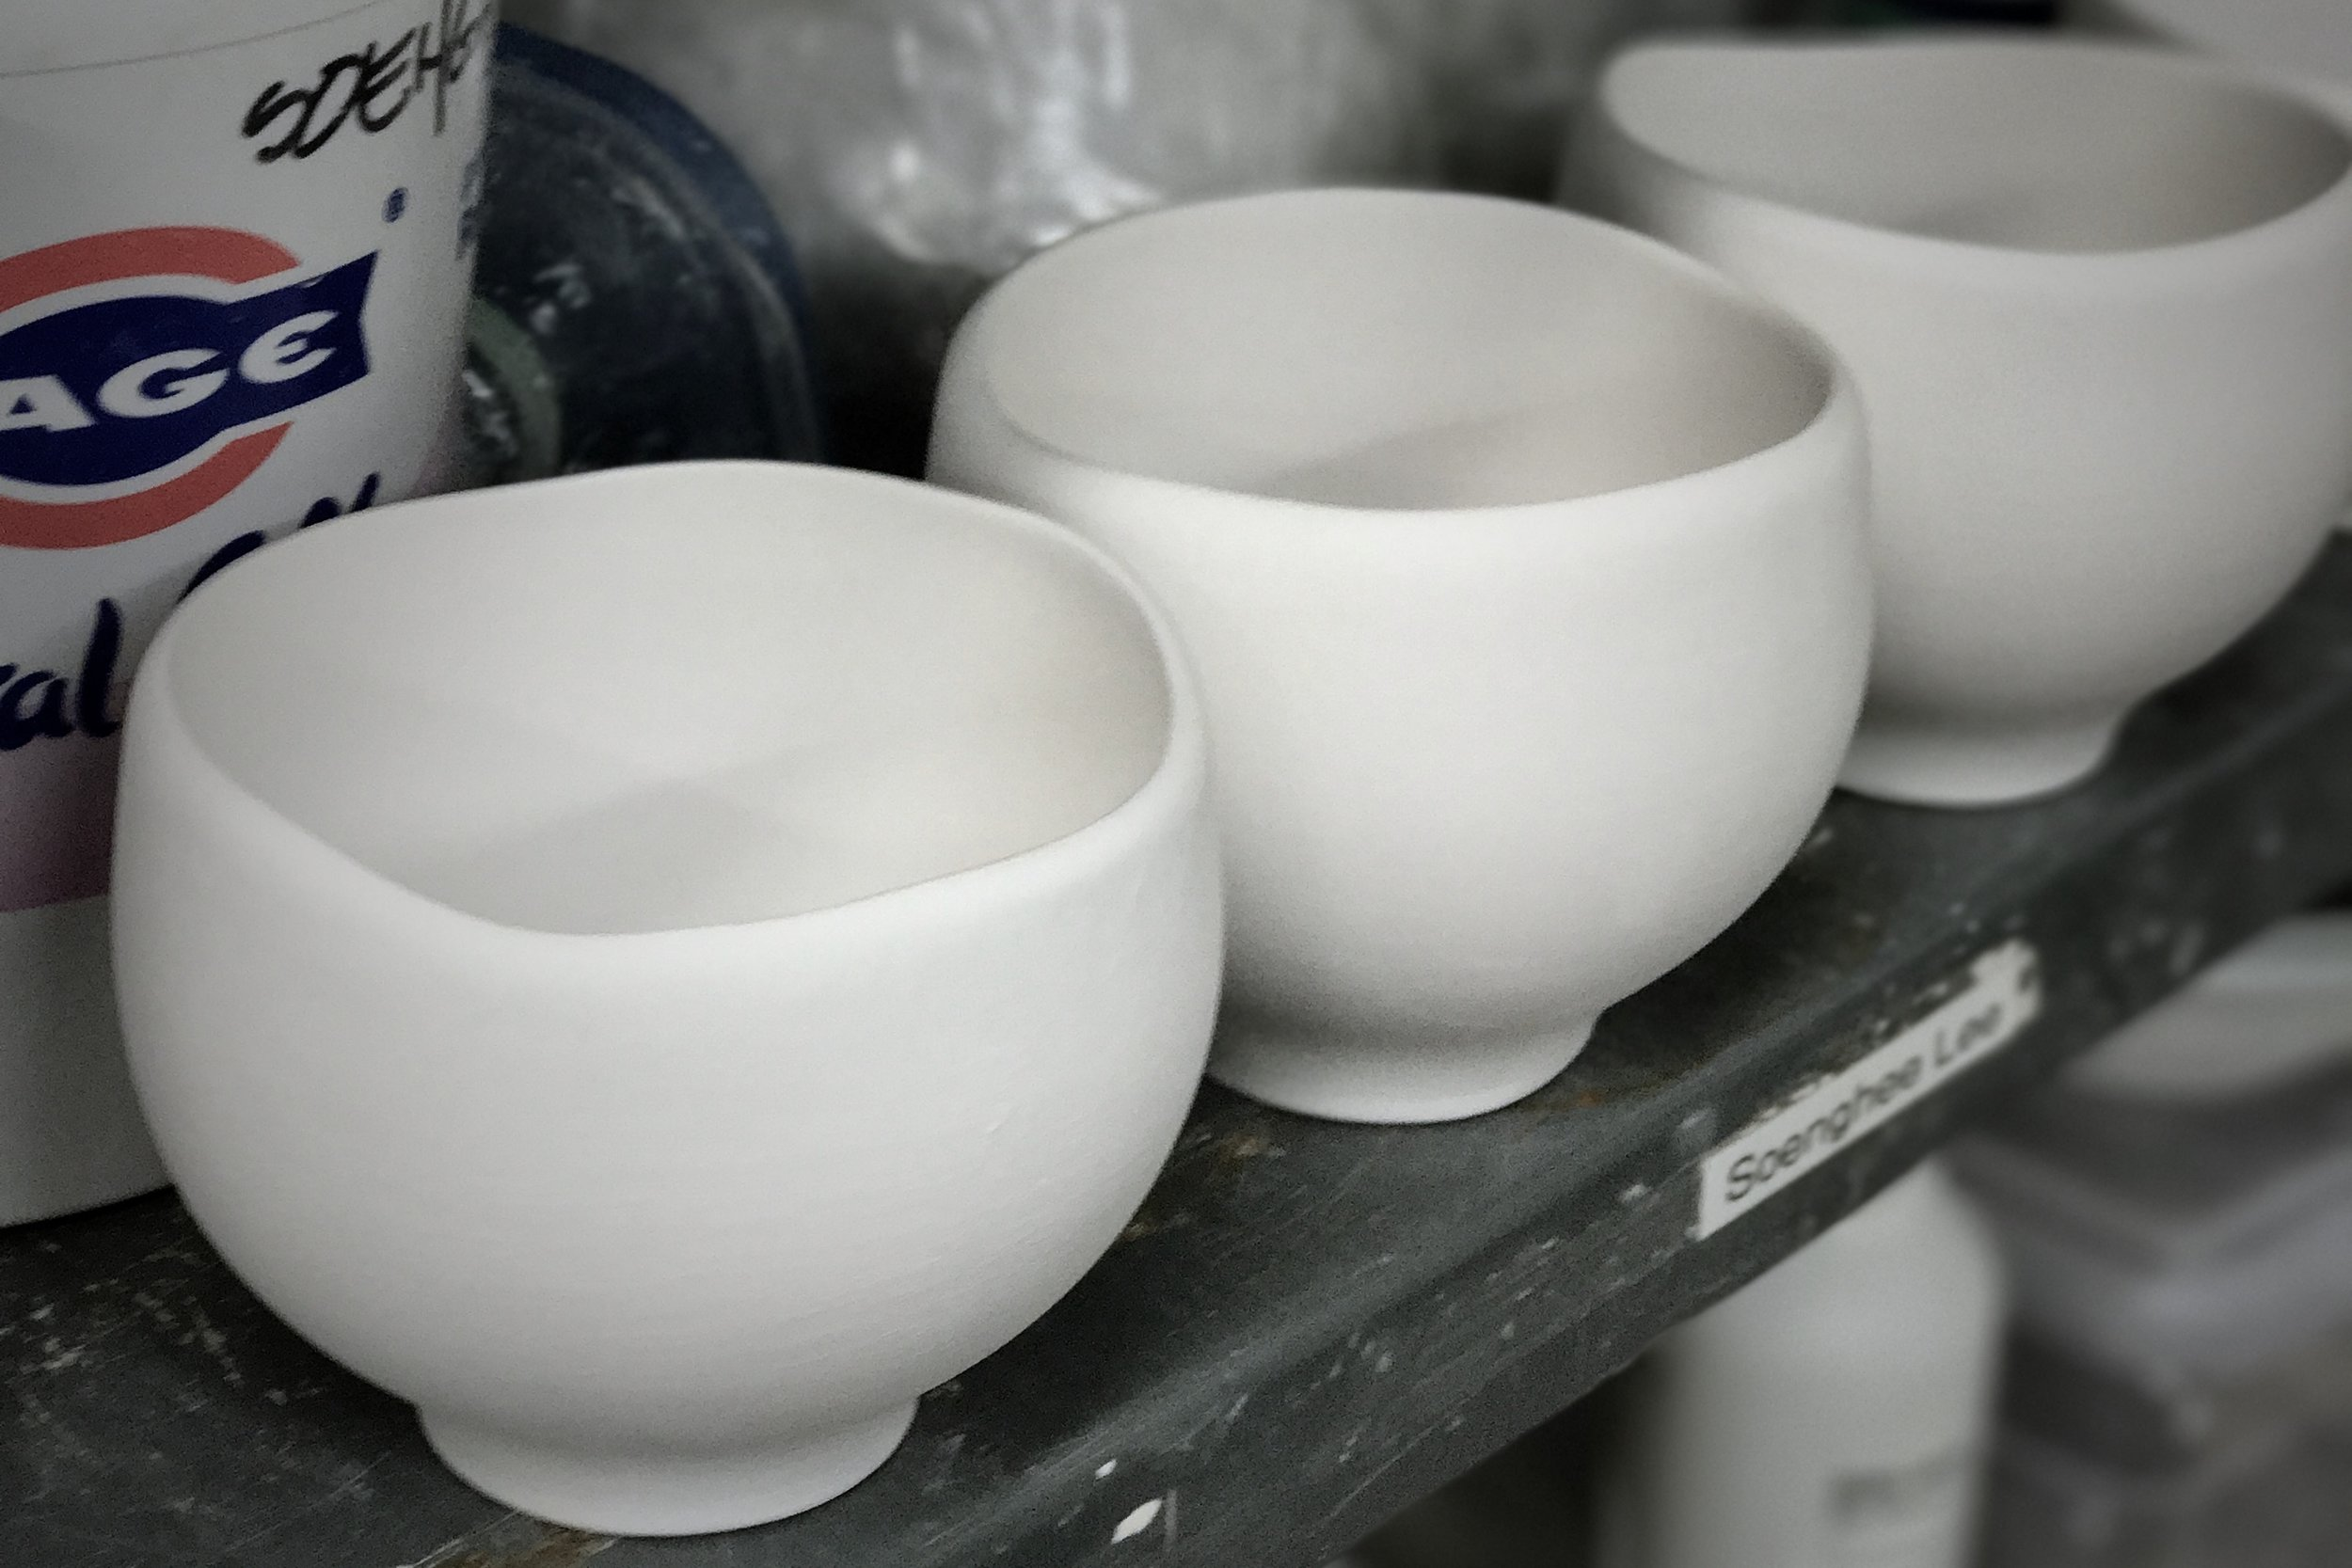 porcelain slipcasting cups. Rim of each cup has carefully crafted variations of curves.